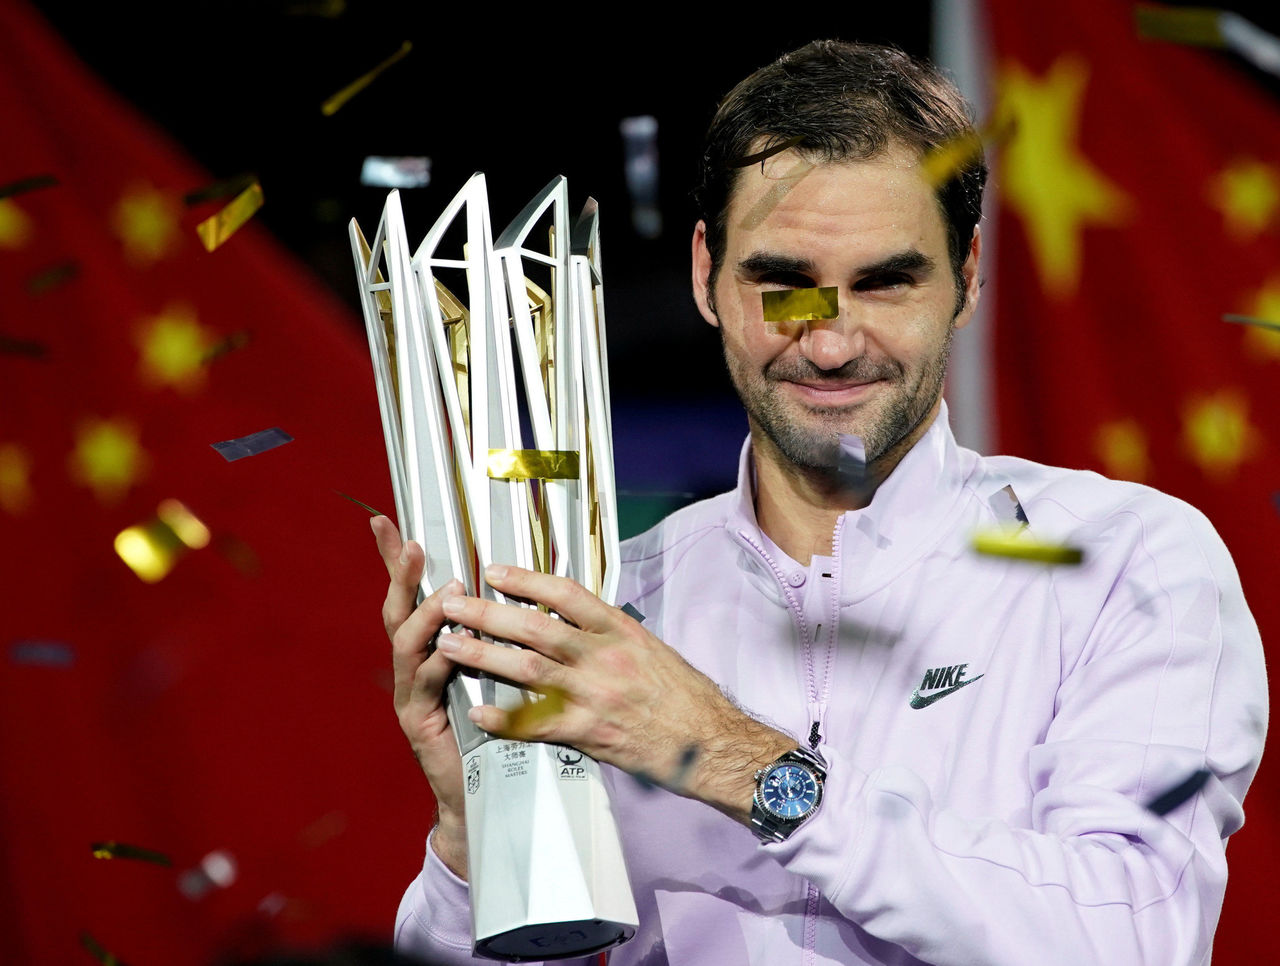 Cropped 2017 10 15t120653z 627754461 rc178ce8cfe0 rtrmadp 3 tennis shanghai